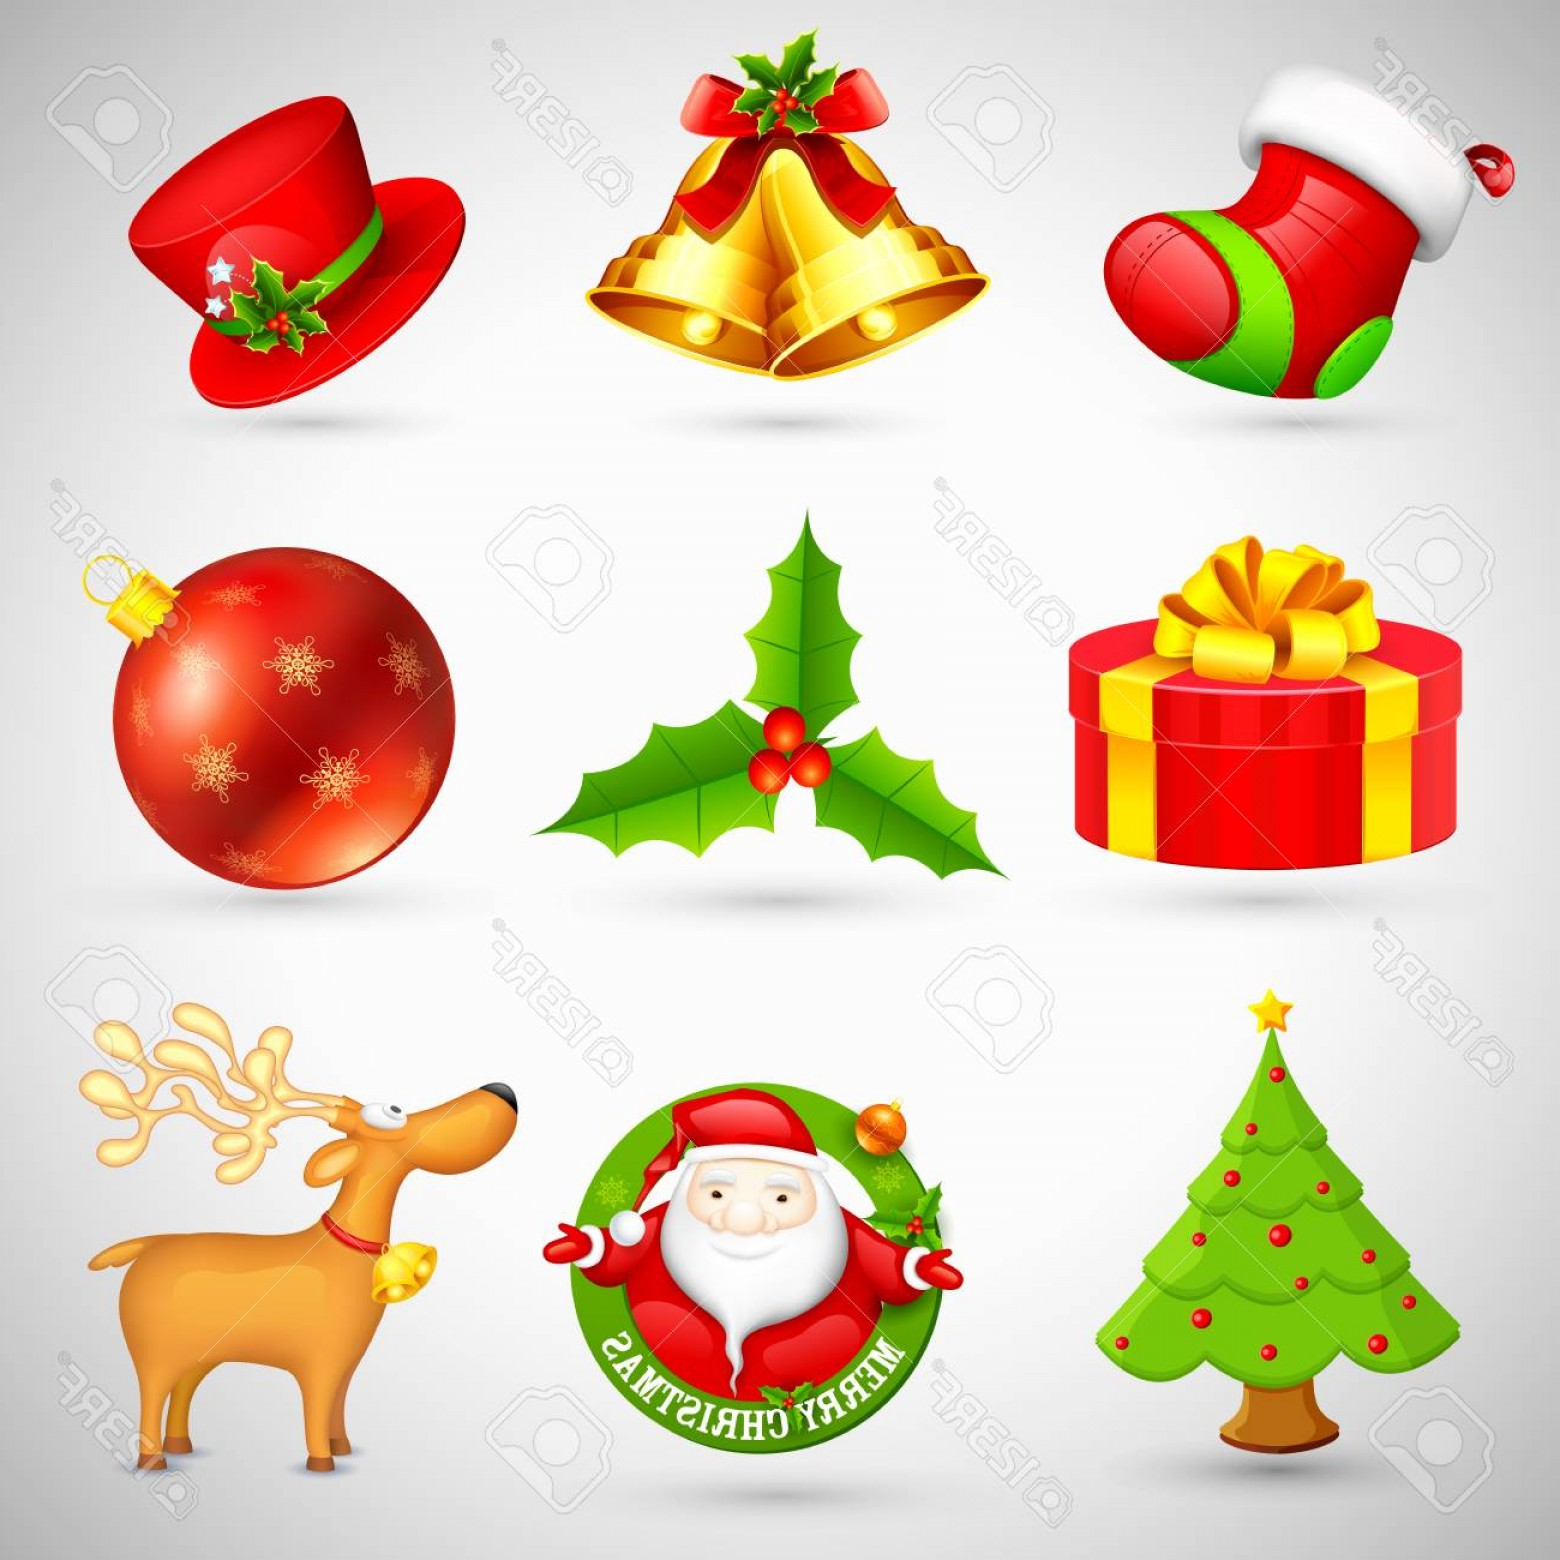 Vector-Based Christmas: Photoillustration Of Collection Of Christmas Icon Based Object